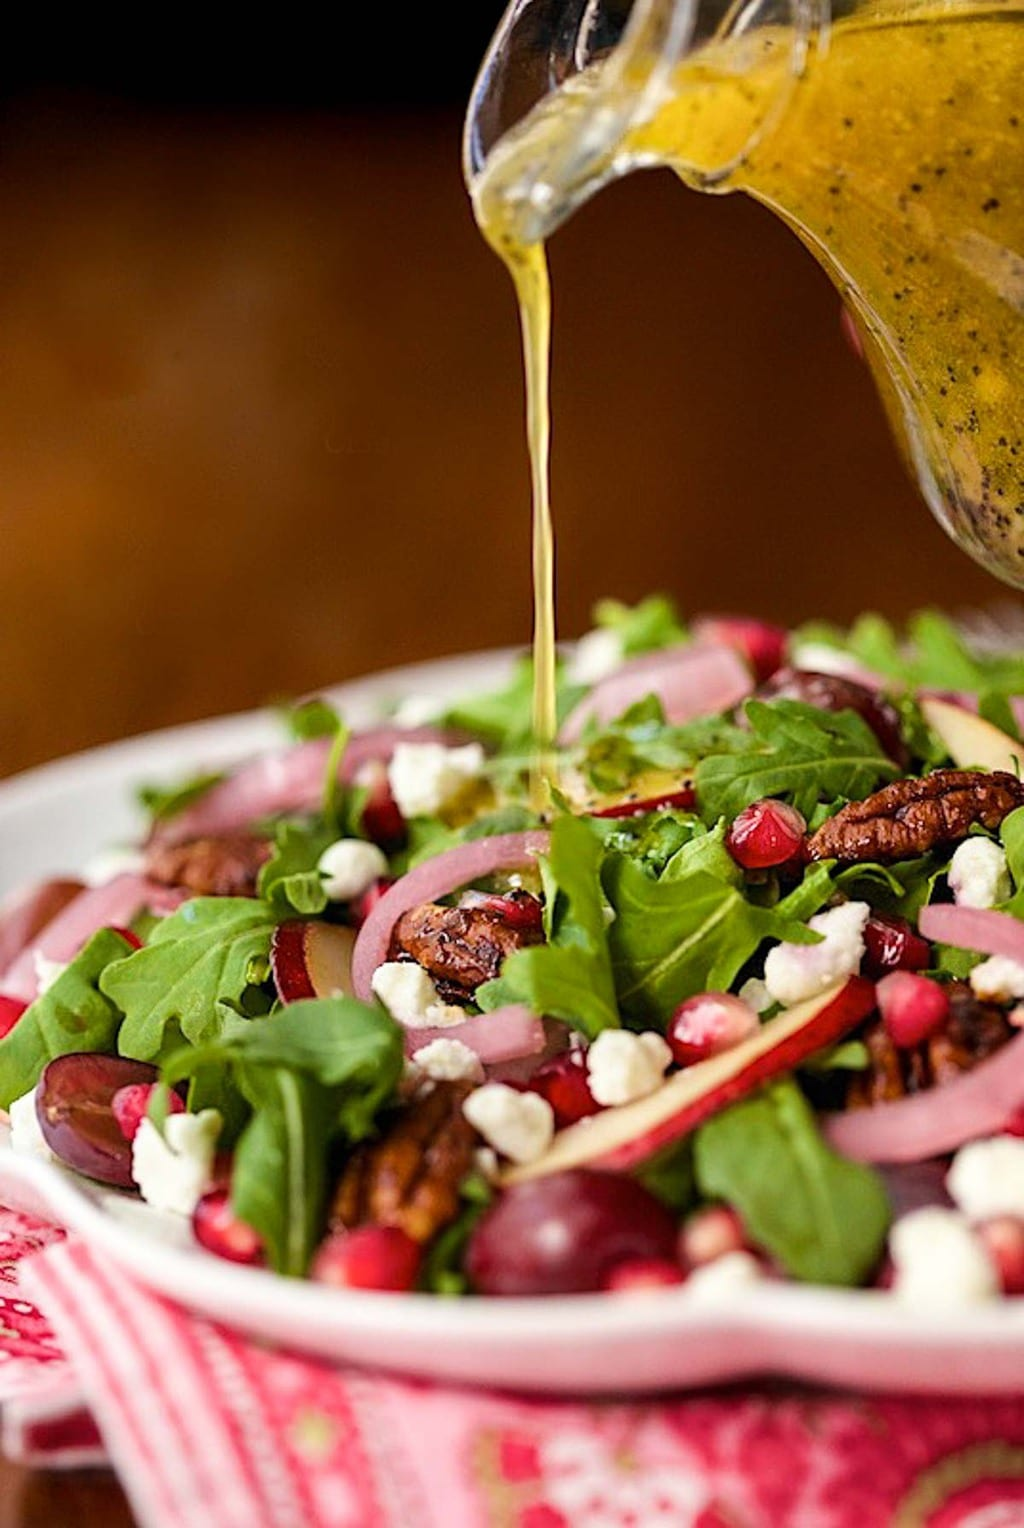 Photo of a patterned serving bowl filled with Arugula, Pomegranate and Pear Salad.